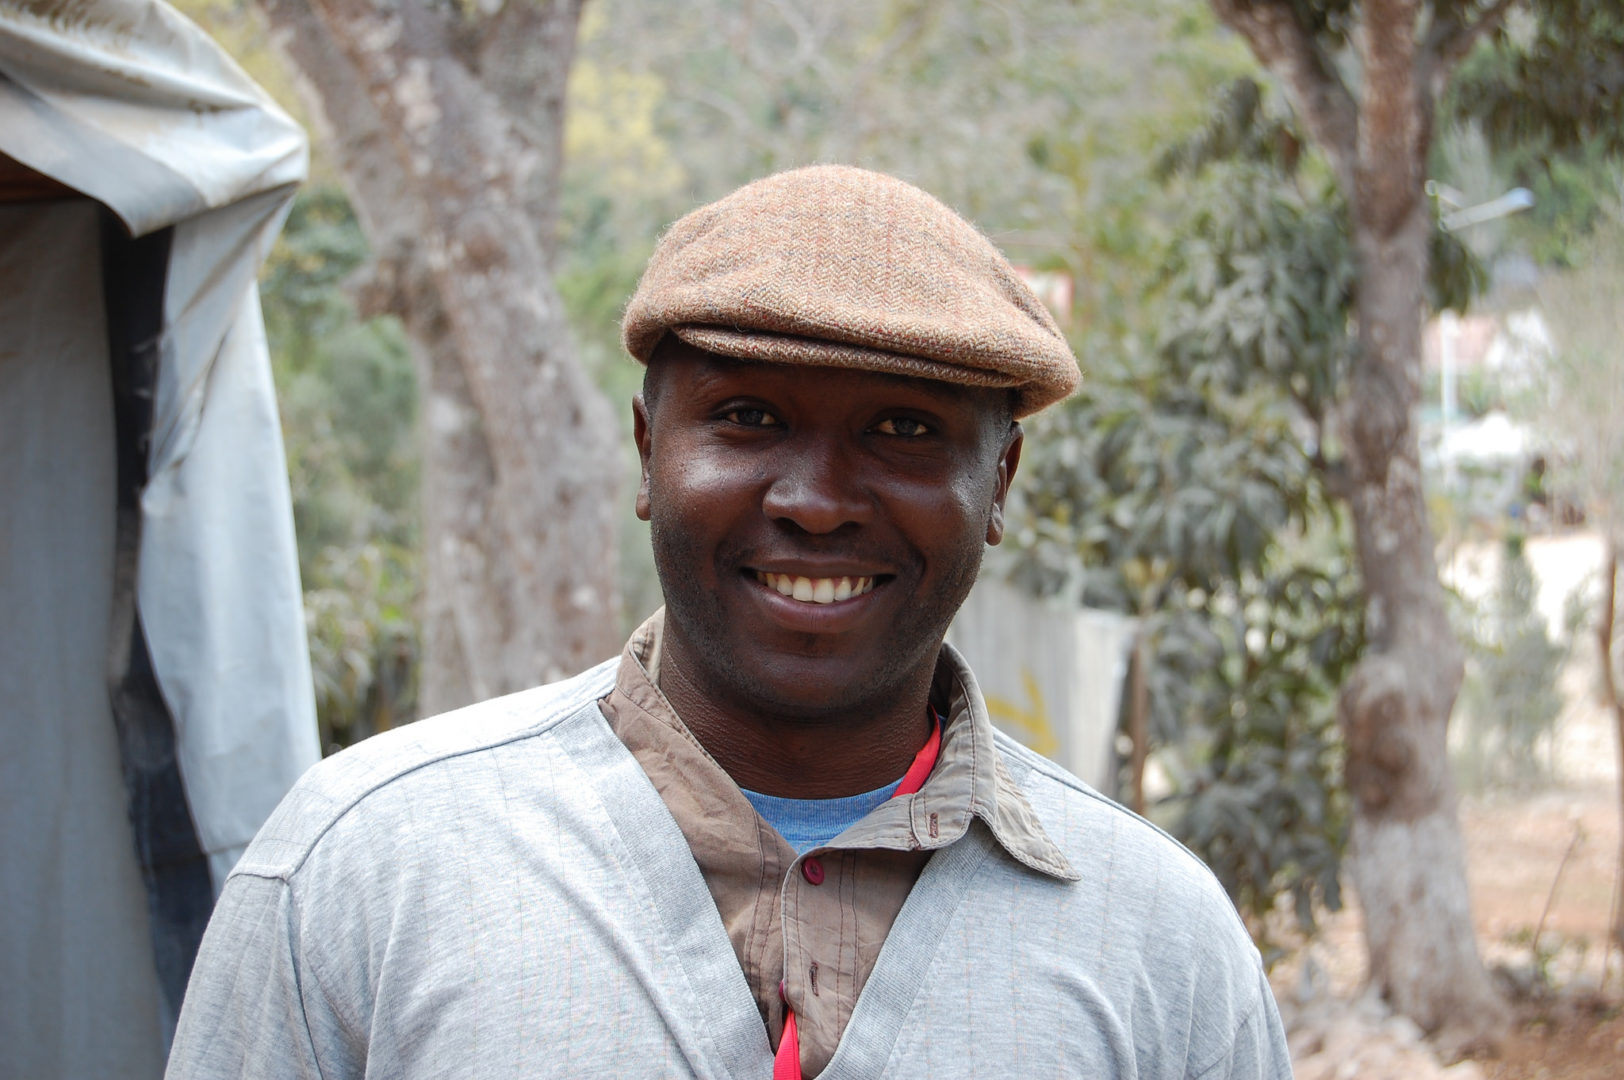 Jean serves as an environmental technician in Haiti.